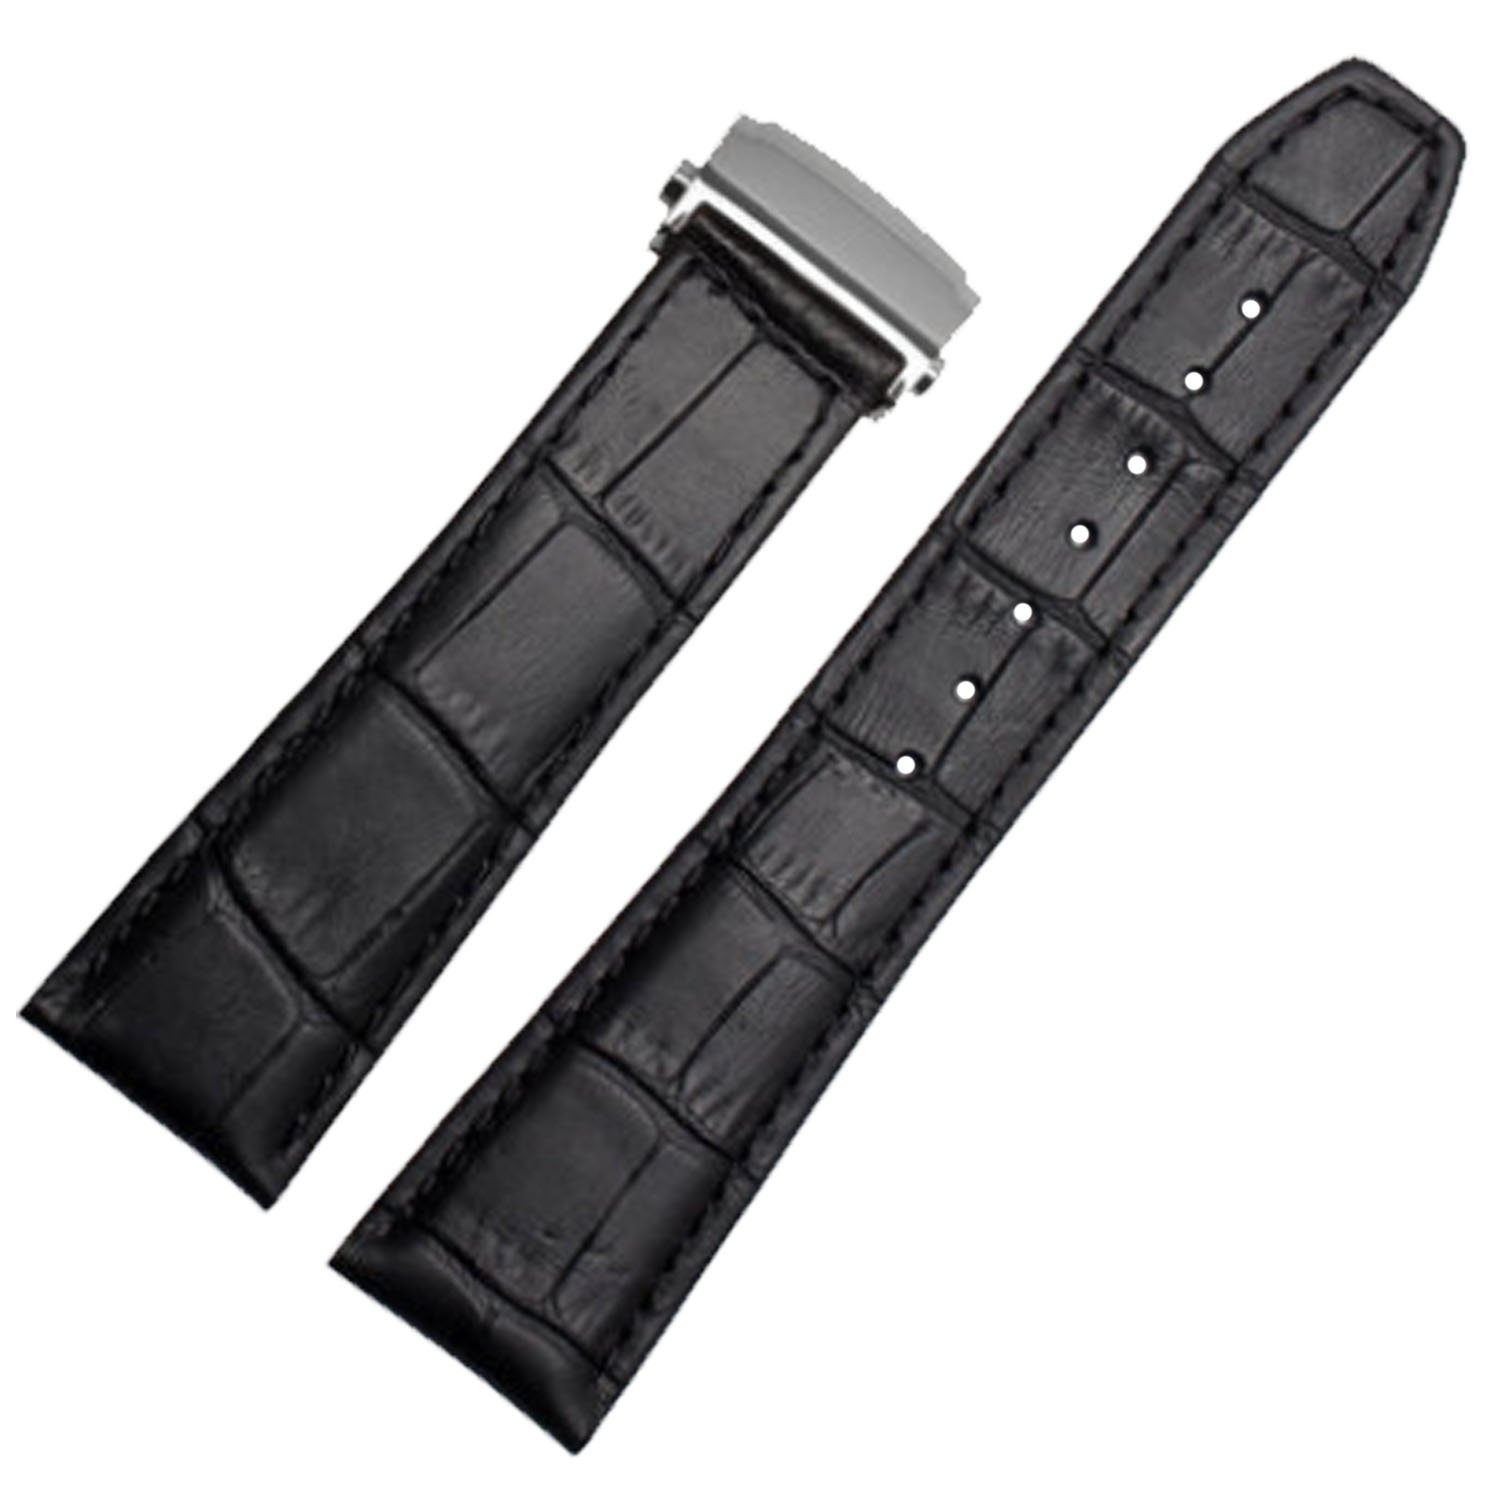 New 20mm 22mm Black Leather Watch Strap Band Deployment Clasp Compatible for Maurice Lacroix (22mm) by YMID